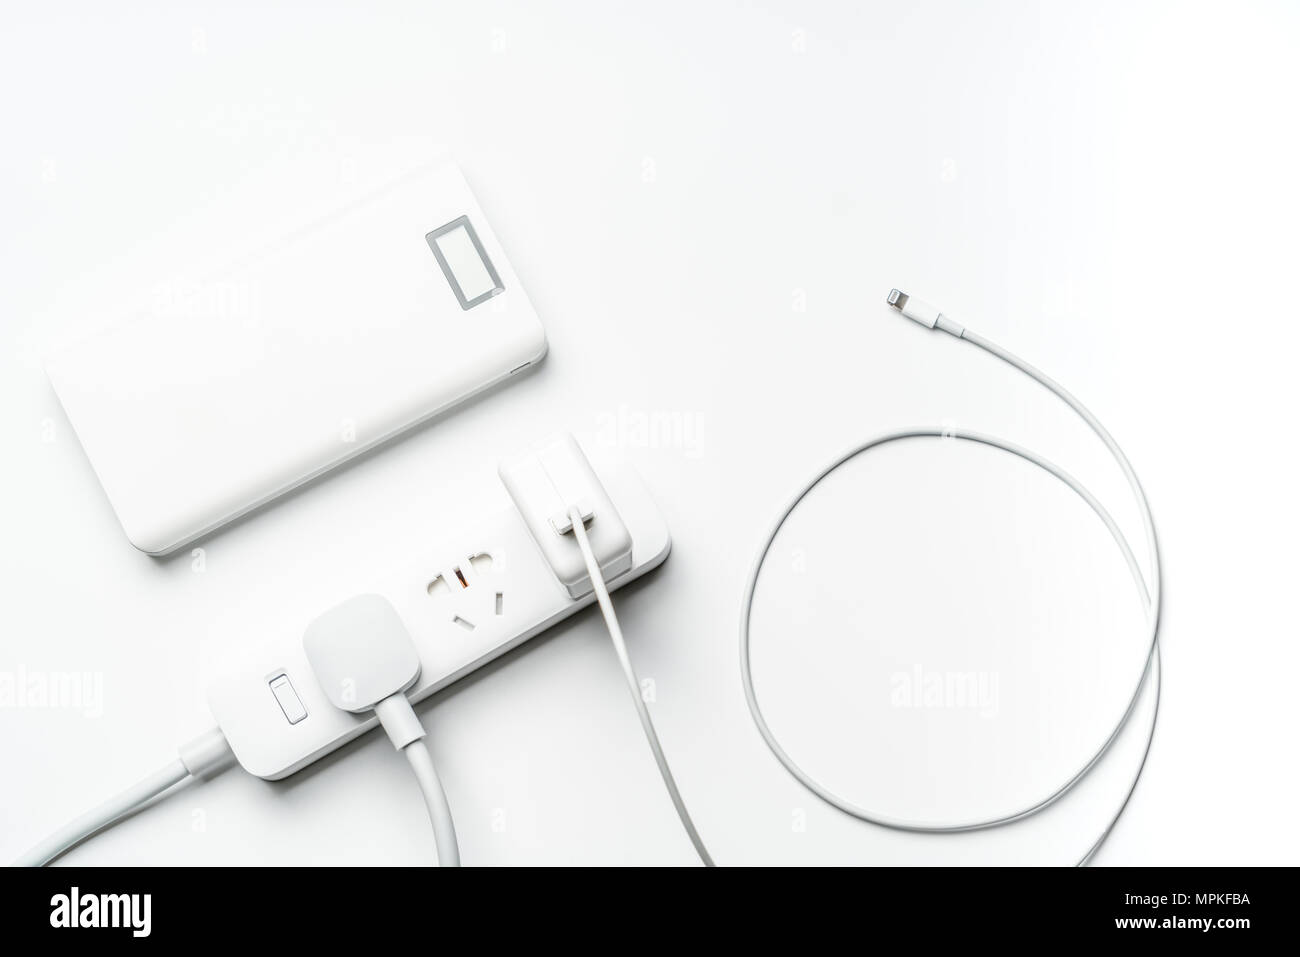 Socket Plug Electric Power Bank And Wire White Color Isolate Save Wiring A Outlet Energy Reduce Efficiency Concept